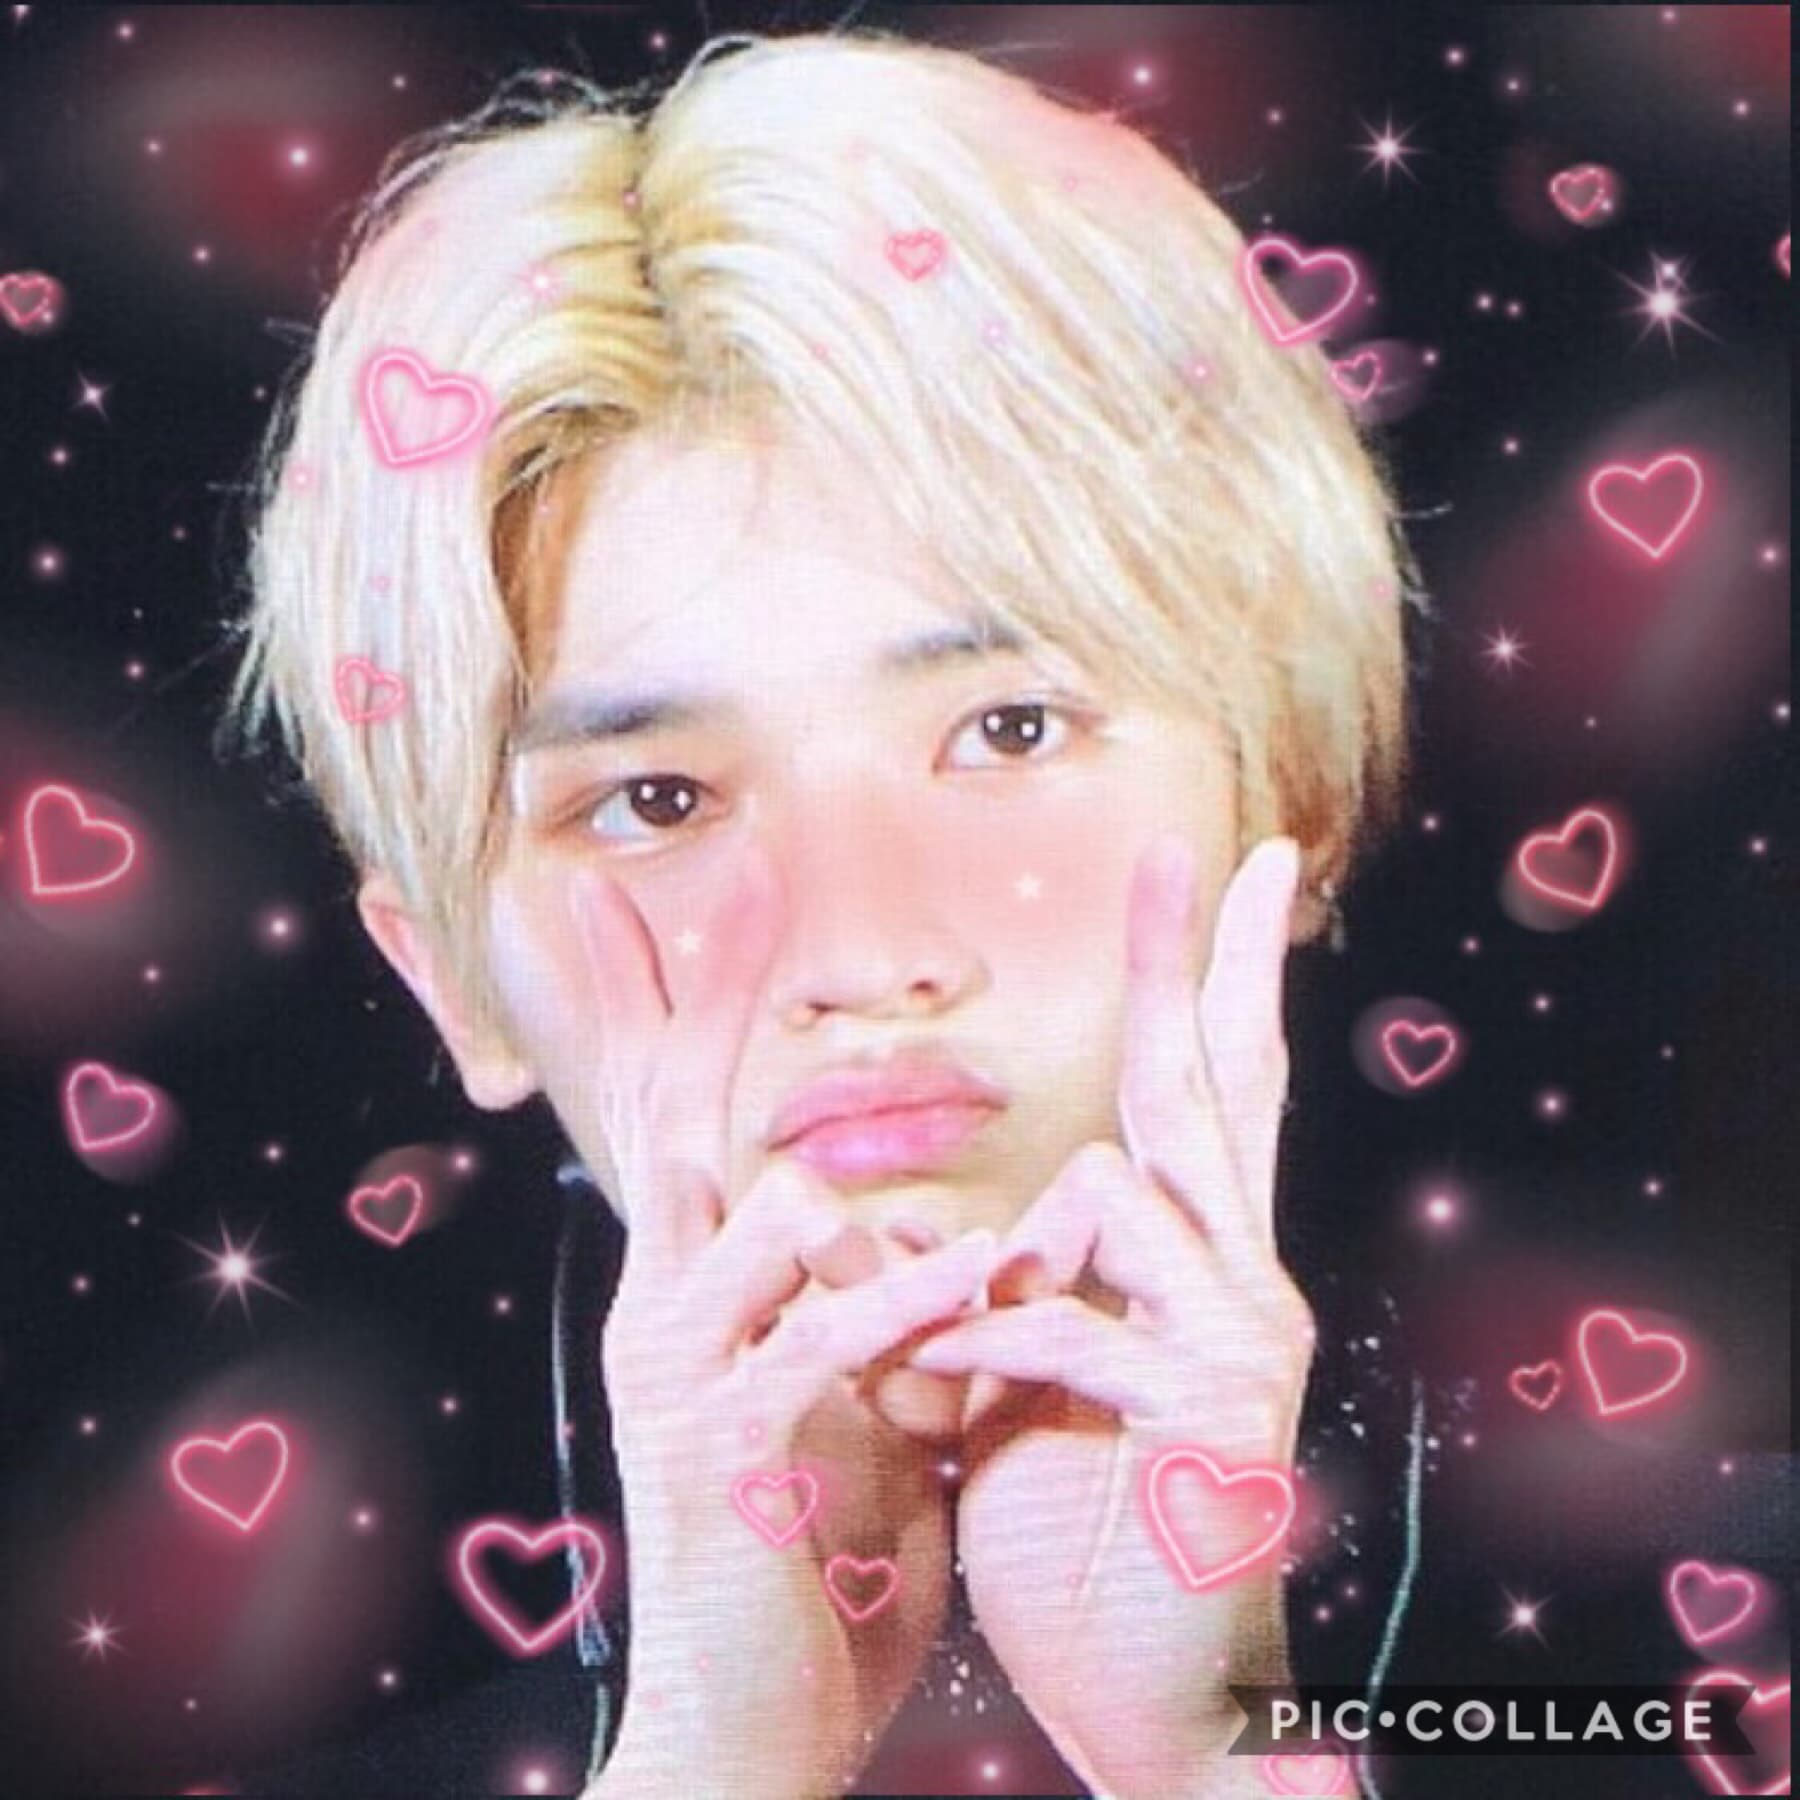 ʚ 𝚃𝚊𝚙 𝚑𝚎𝚛𝚎 ɞ ➯ heyyyy! I hope your day was amazing :))) I made this quick lil edit of taeyong cuz I was bored lol ➯ I'm trying out different fonts for my pics so it might be a little all over the place for a minute  ➯ qotd: who's your ult bias from nct?